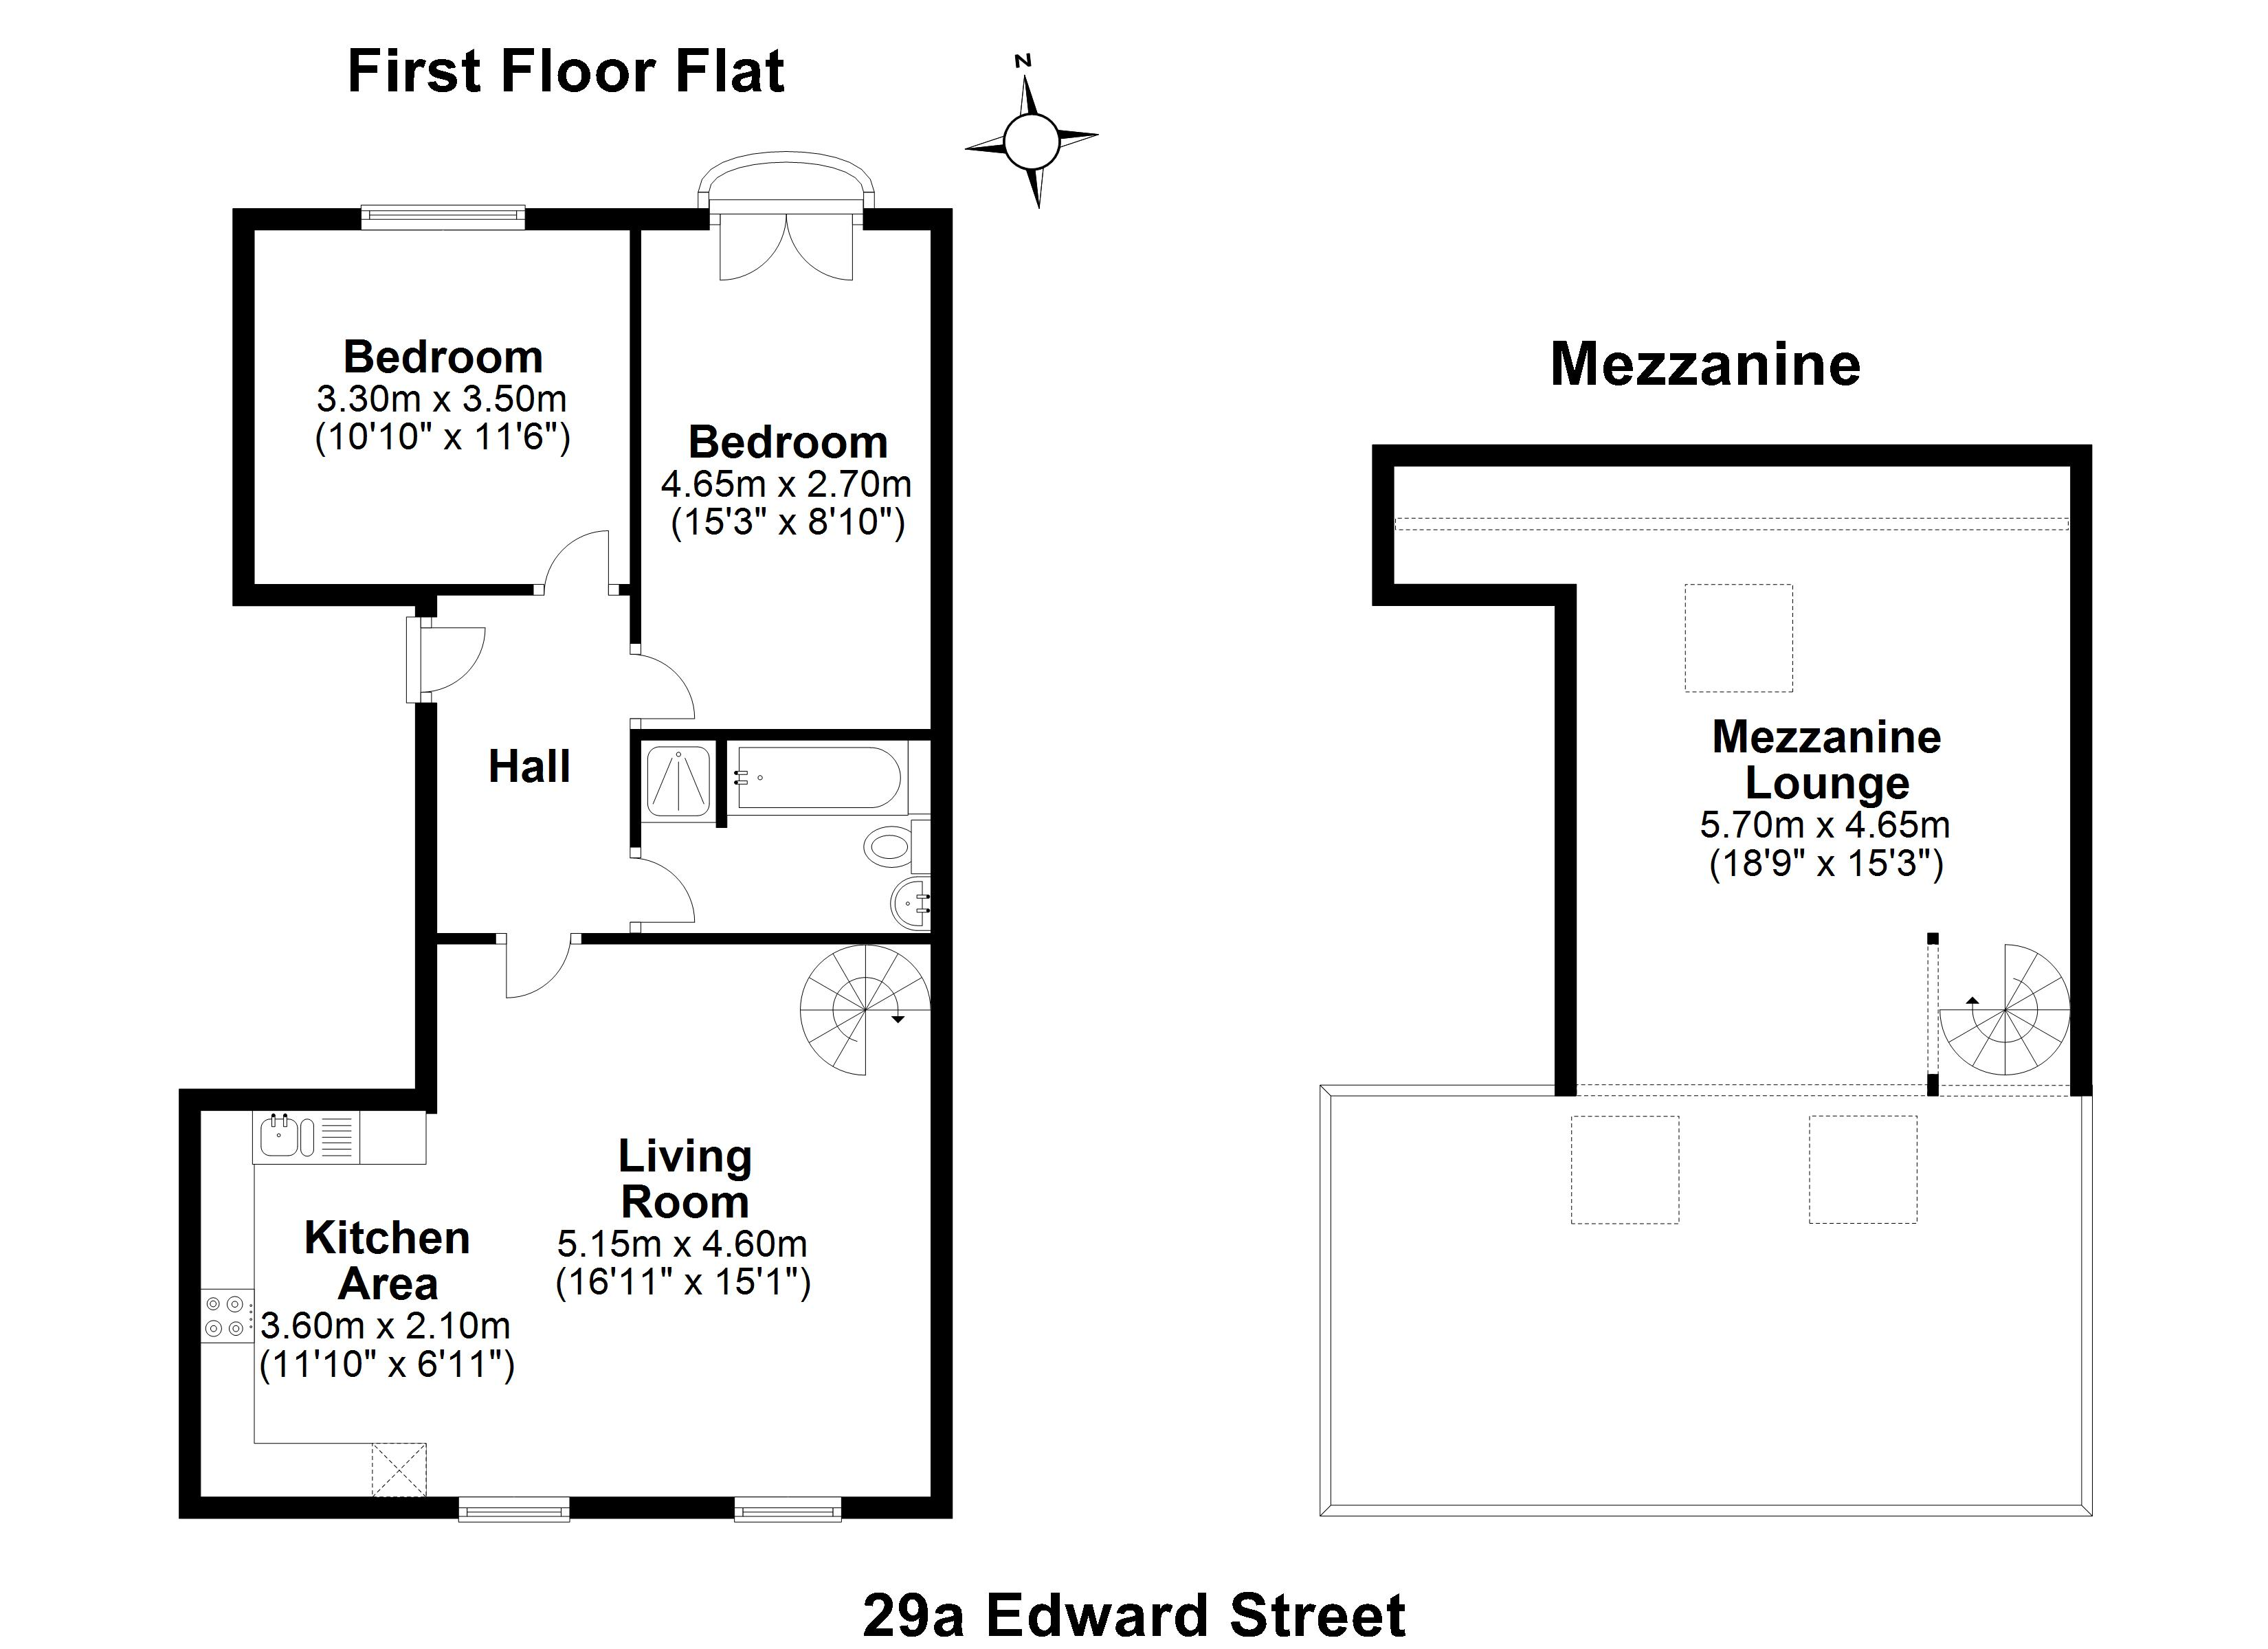 29a Edward St - PLAN